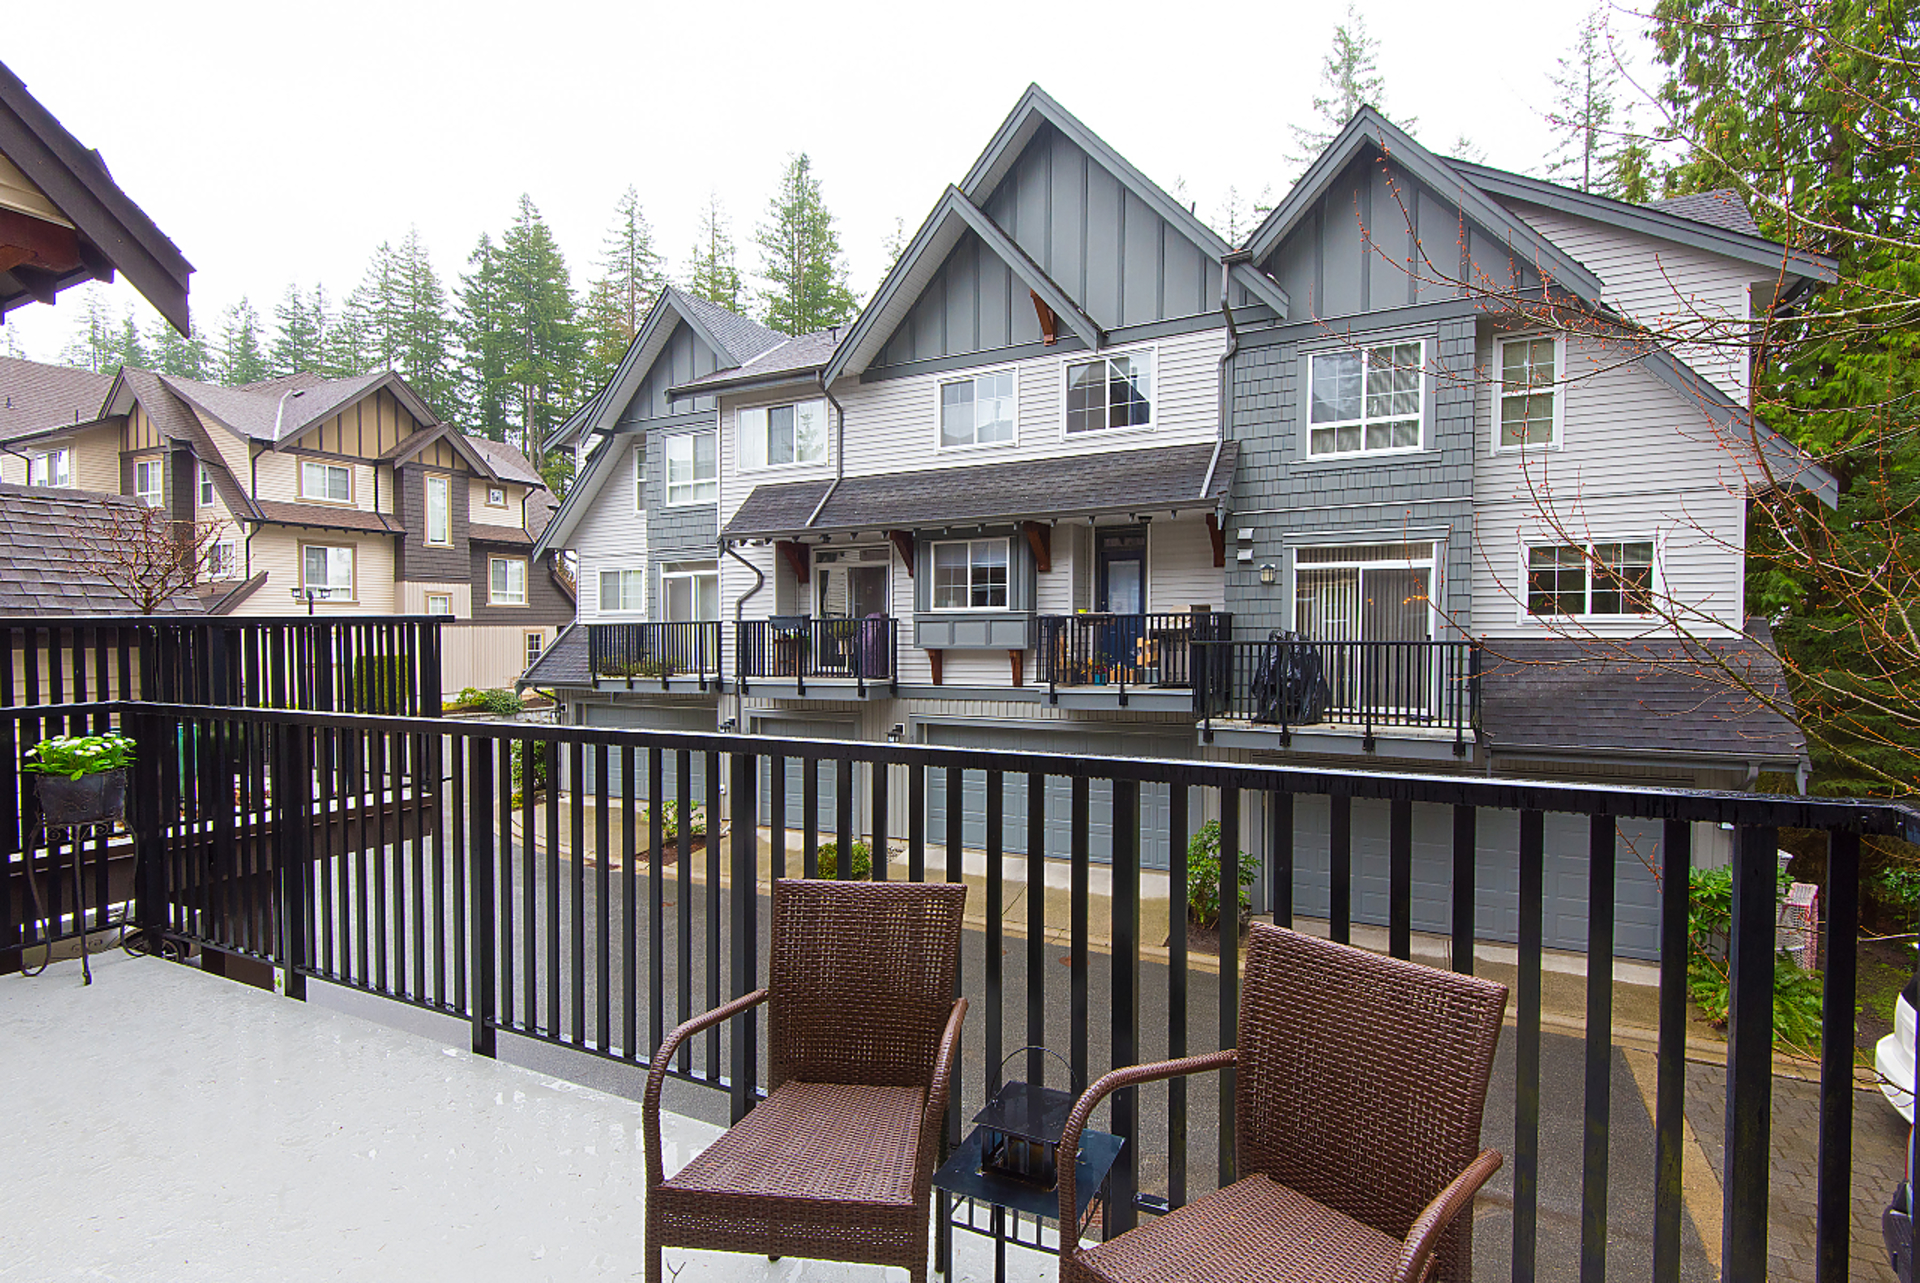 011 at 17 - 2200 Panorama Drive, Heritage Woods PM, Port Moody